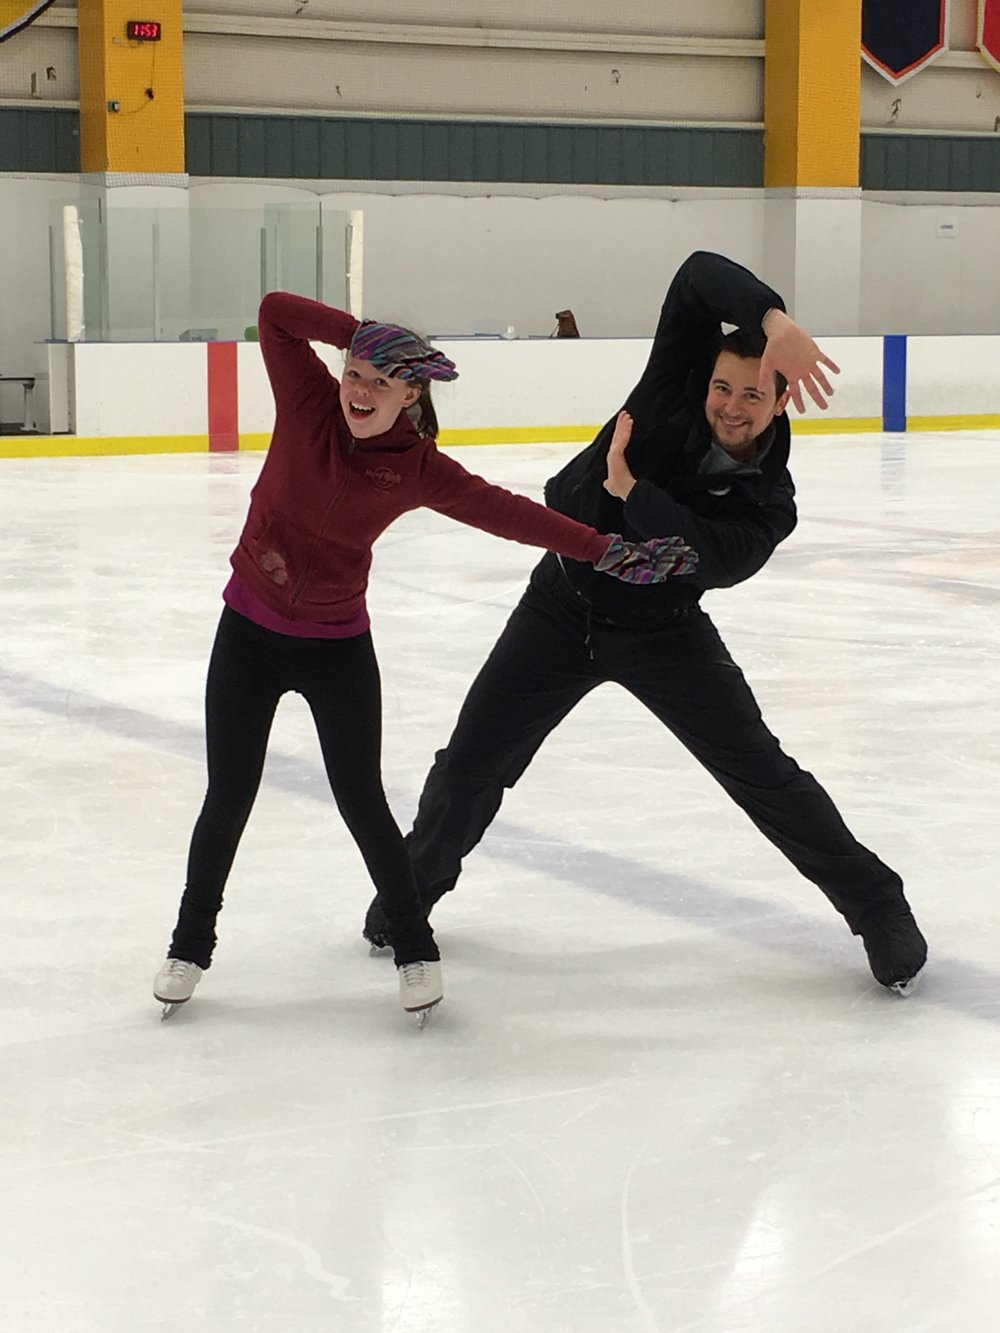 These two are something else - we enjoyed watching her lesson just as much as she enjoyed skating it!!!